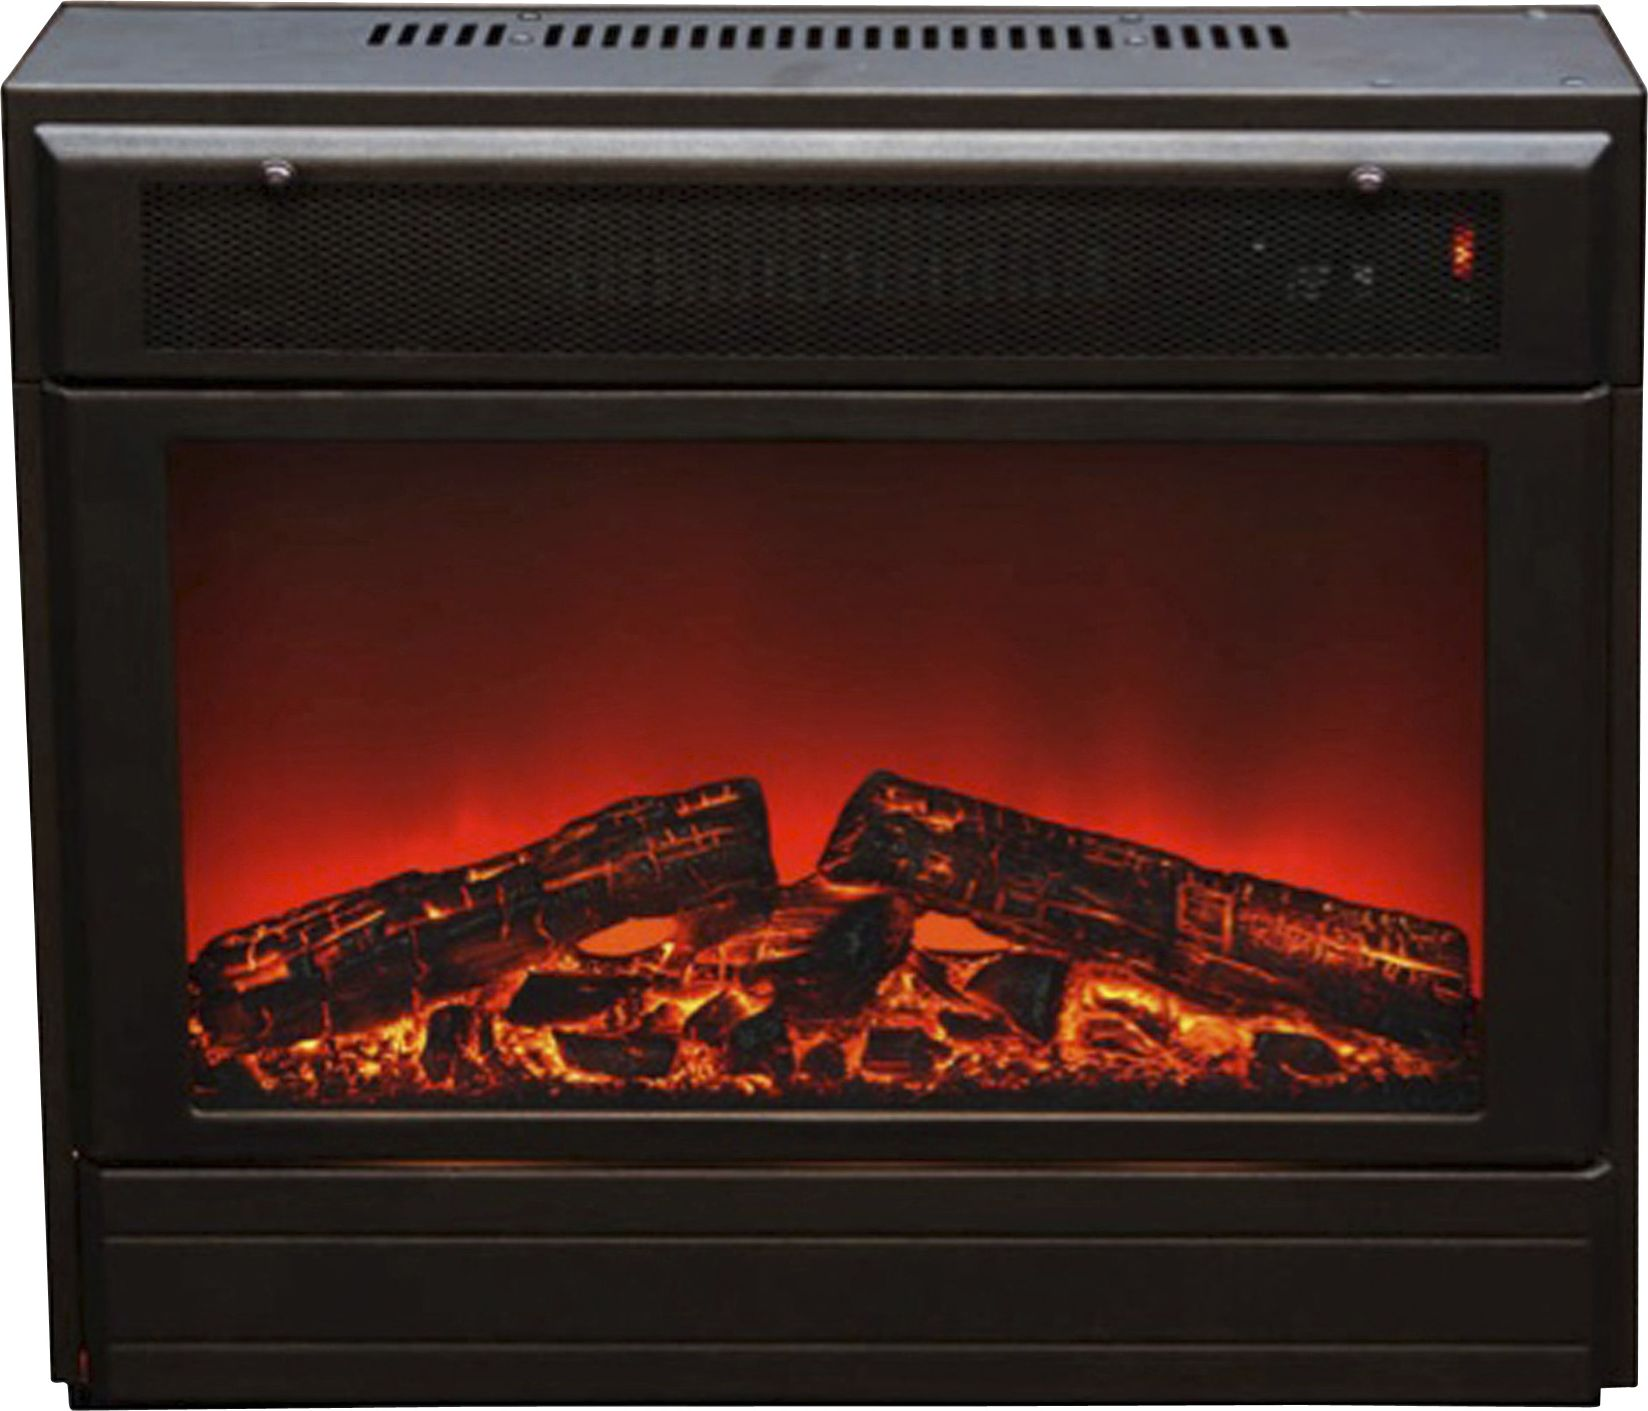 McLeland 32 Lux Electric Fireplace Space Heater Insert